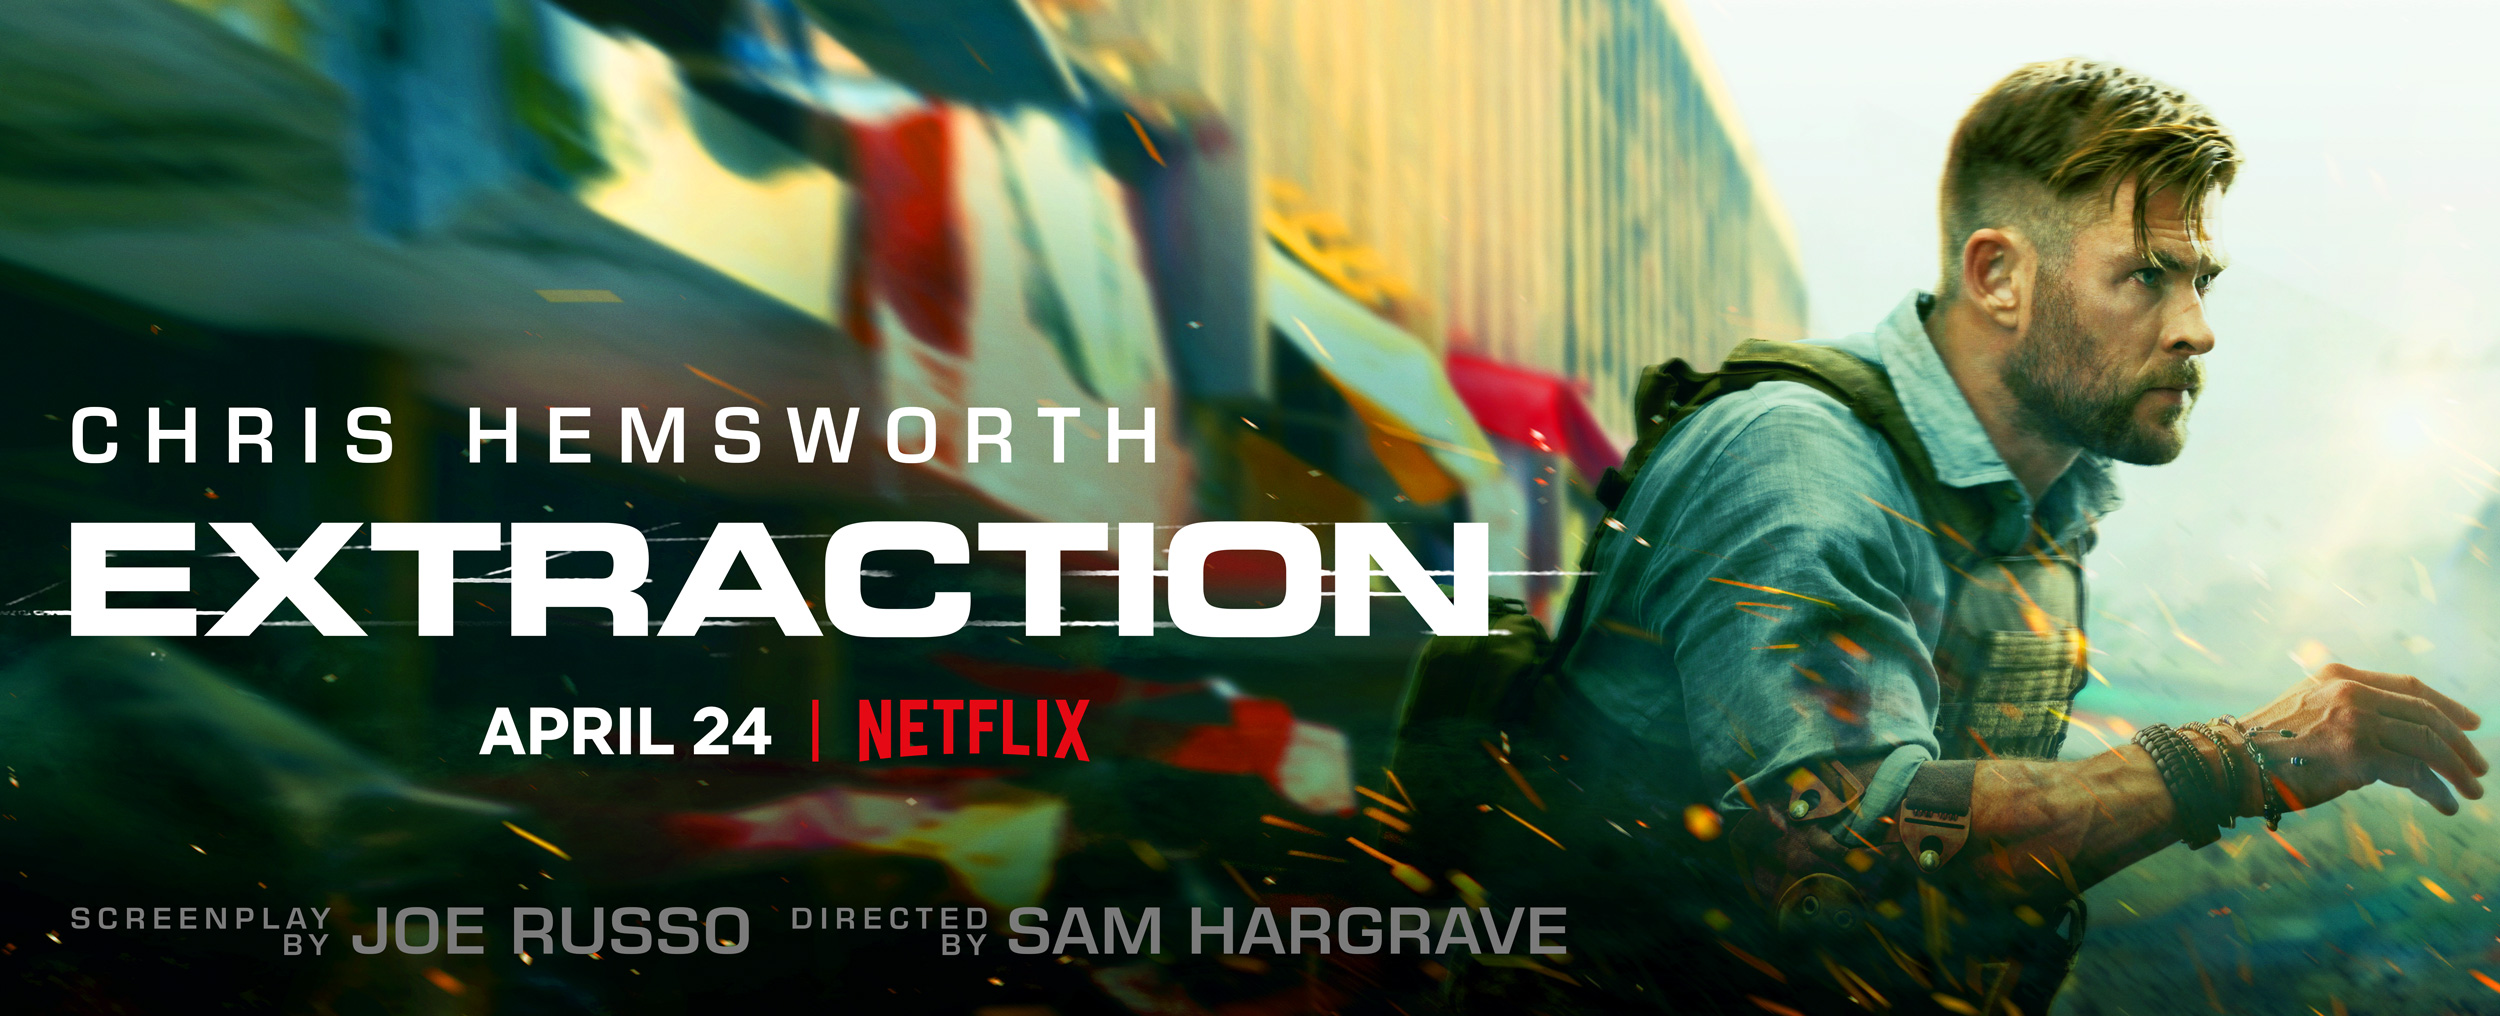 Marco Grob Shoots Poster Art for New Netflix Release 'Extraction'